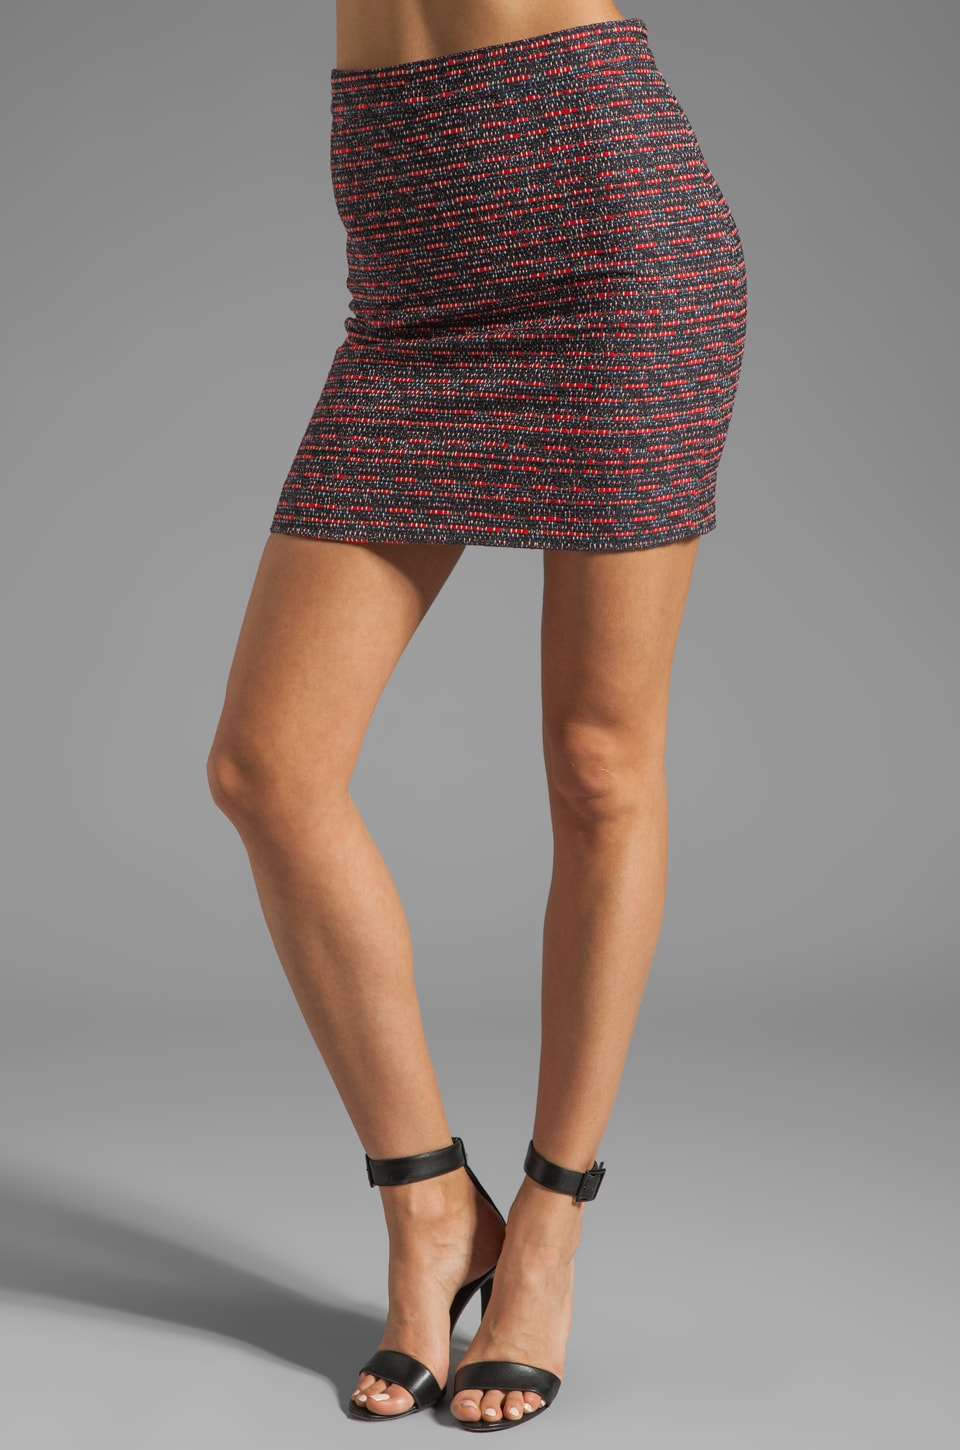 Marc by Marc Jacobs Miranda Tweed Skirt in Cambridge Red Multi